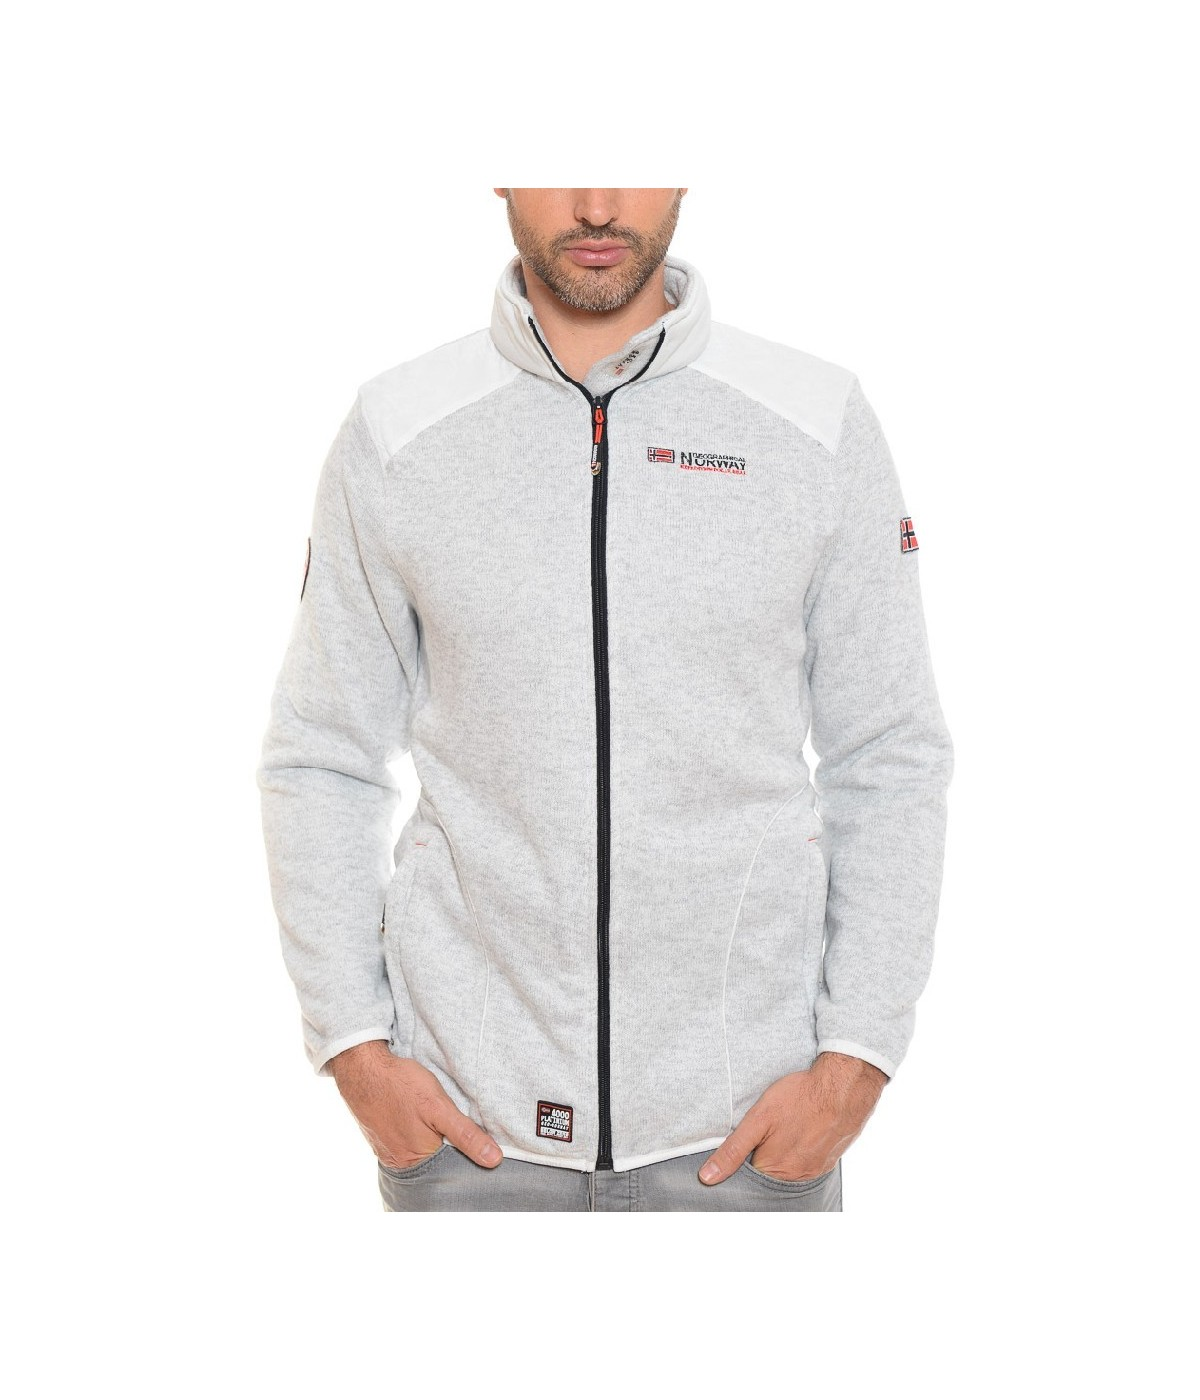 Polaire Homme Geographical Norway Tuteur Blanc